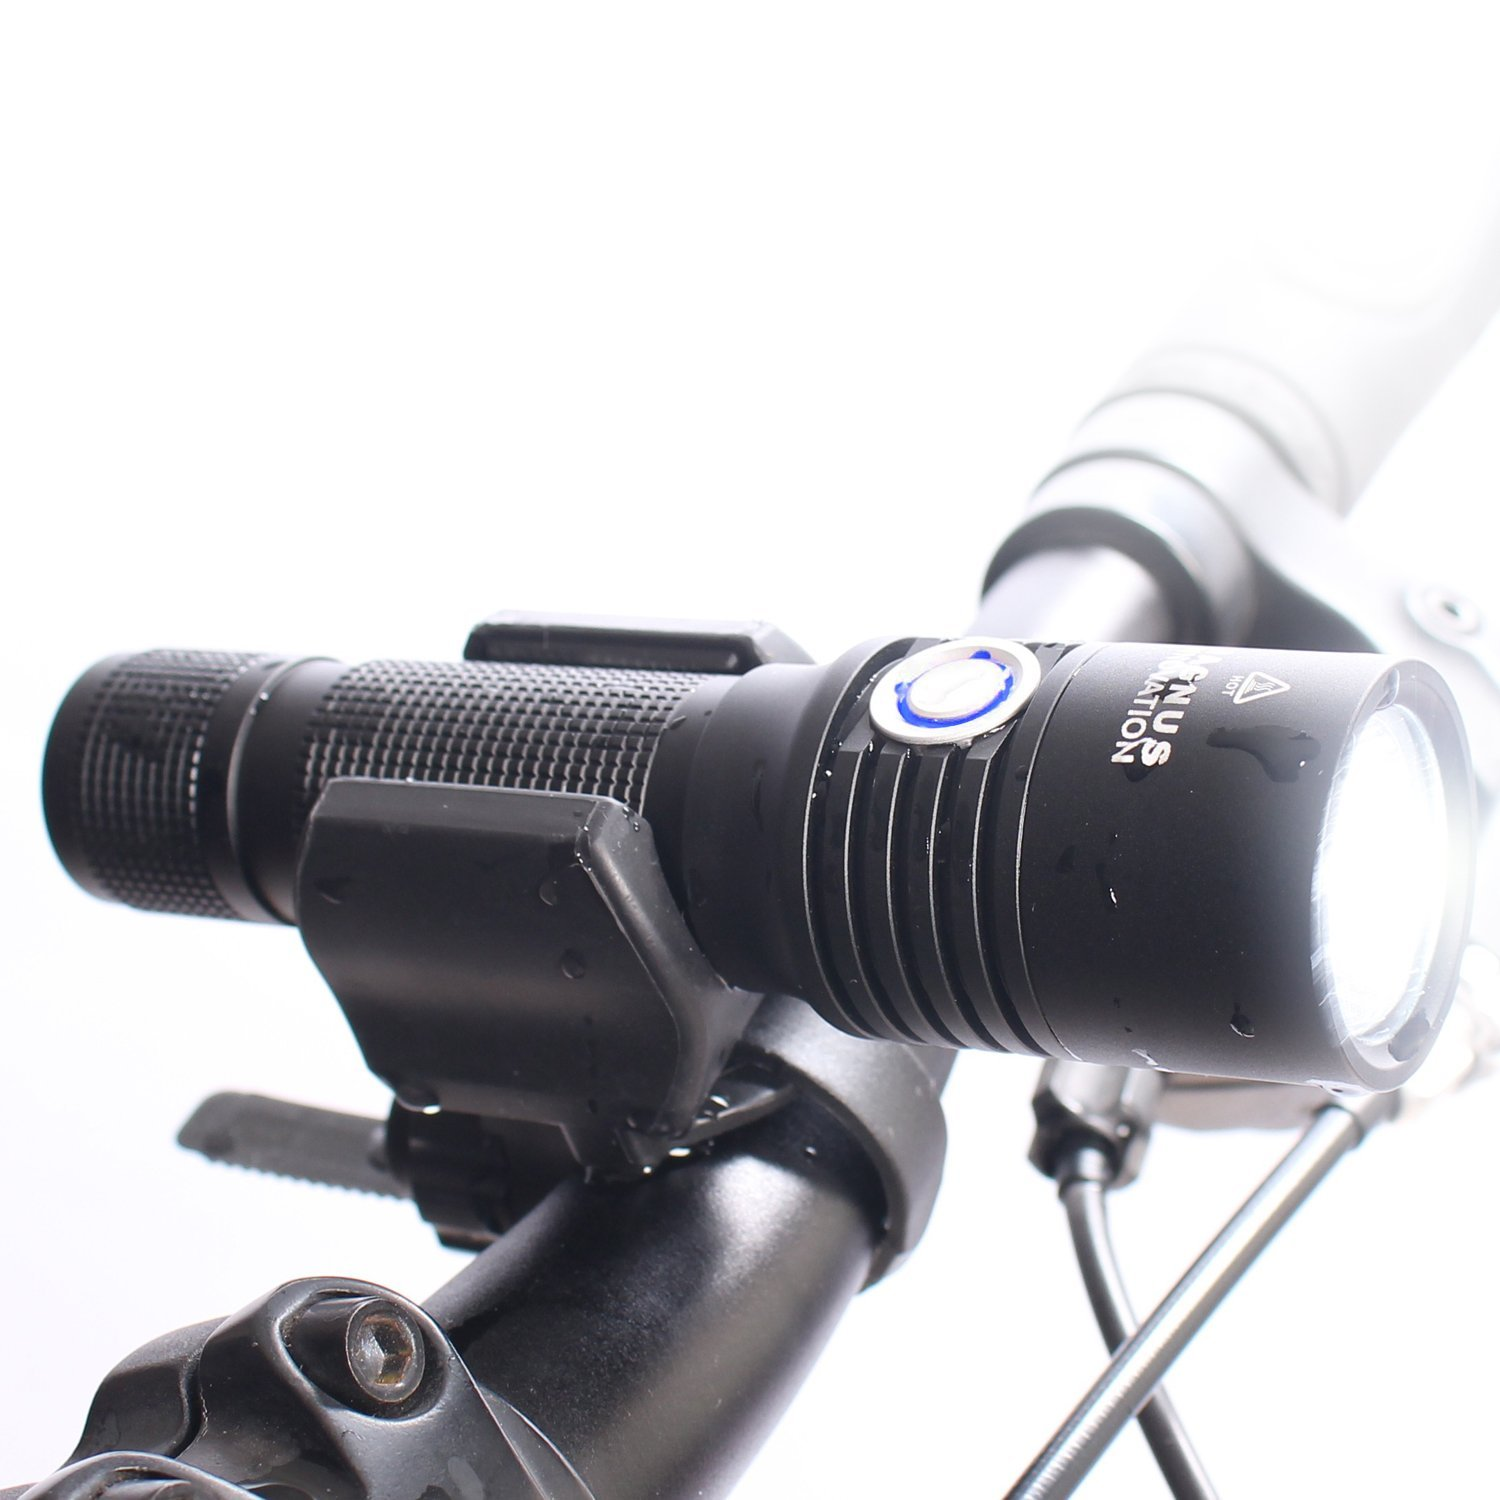 Vision II 860 Lumen USB Bike Light